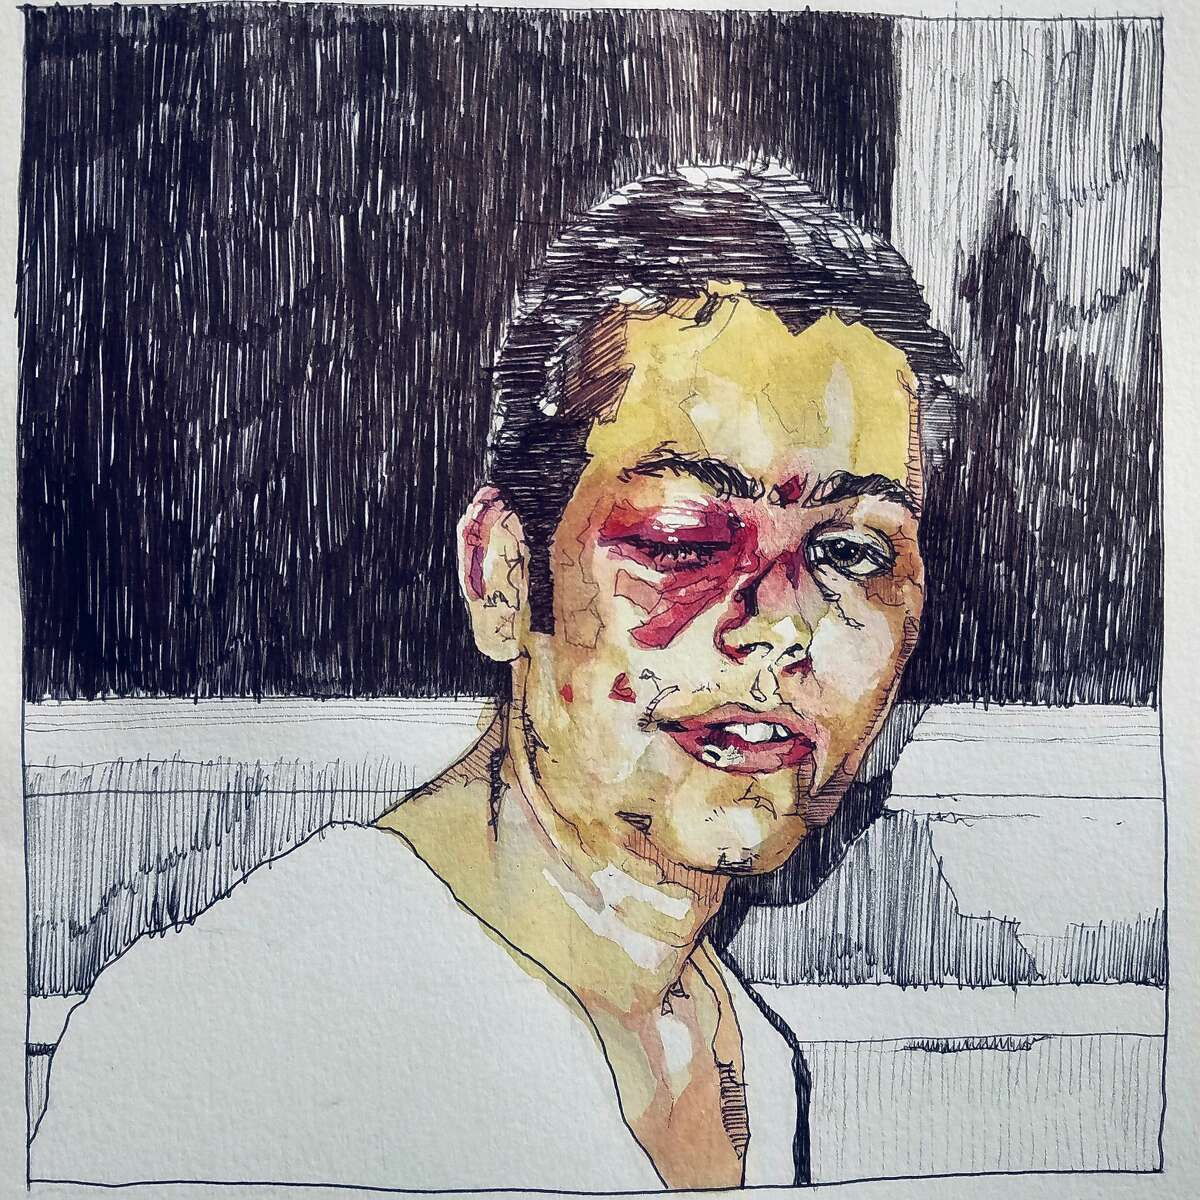 """""""Incident"""" by Miha Sarani, the only piece in his new series """"But Bearing in Mind"""" that does not draw from photographs of war crimes in World War II era Yugoslavia. Sarani used his own experience of being attacked by skinheads in Slovenia to try to connect with the victims for his series."""